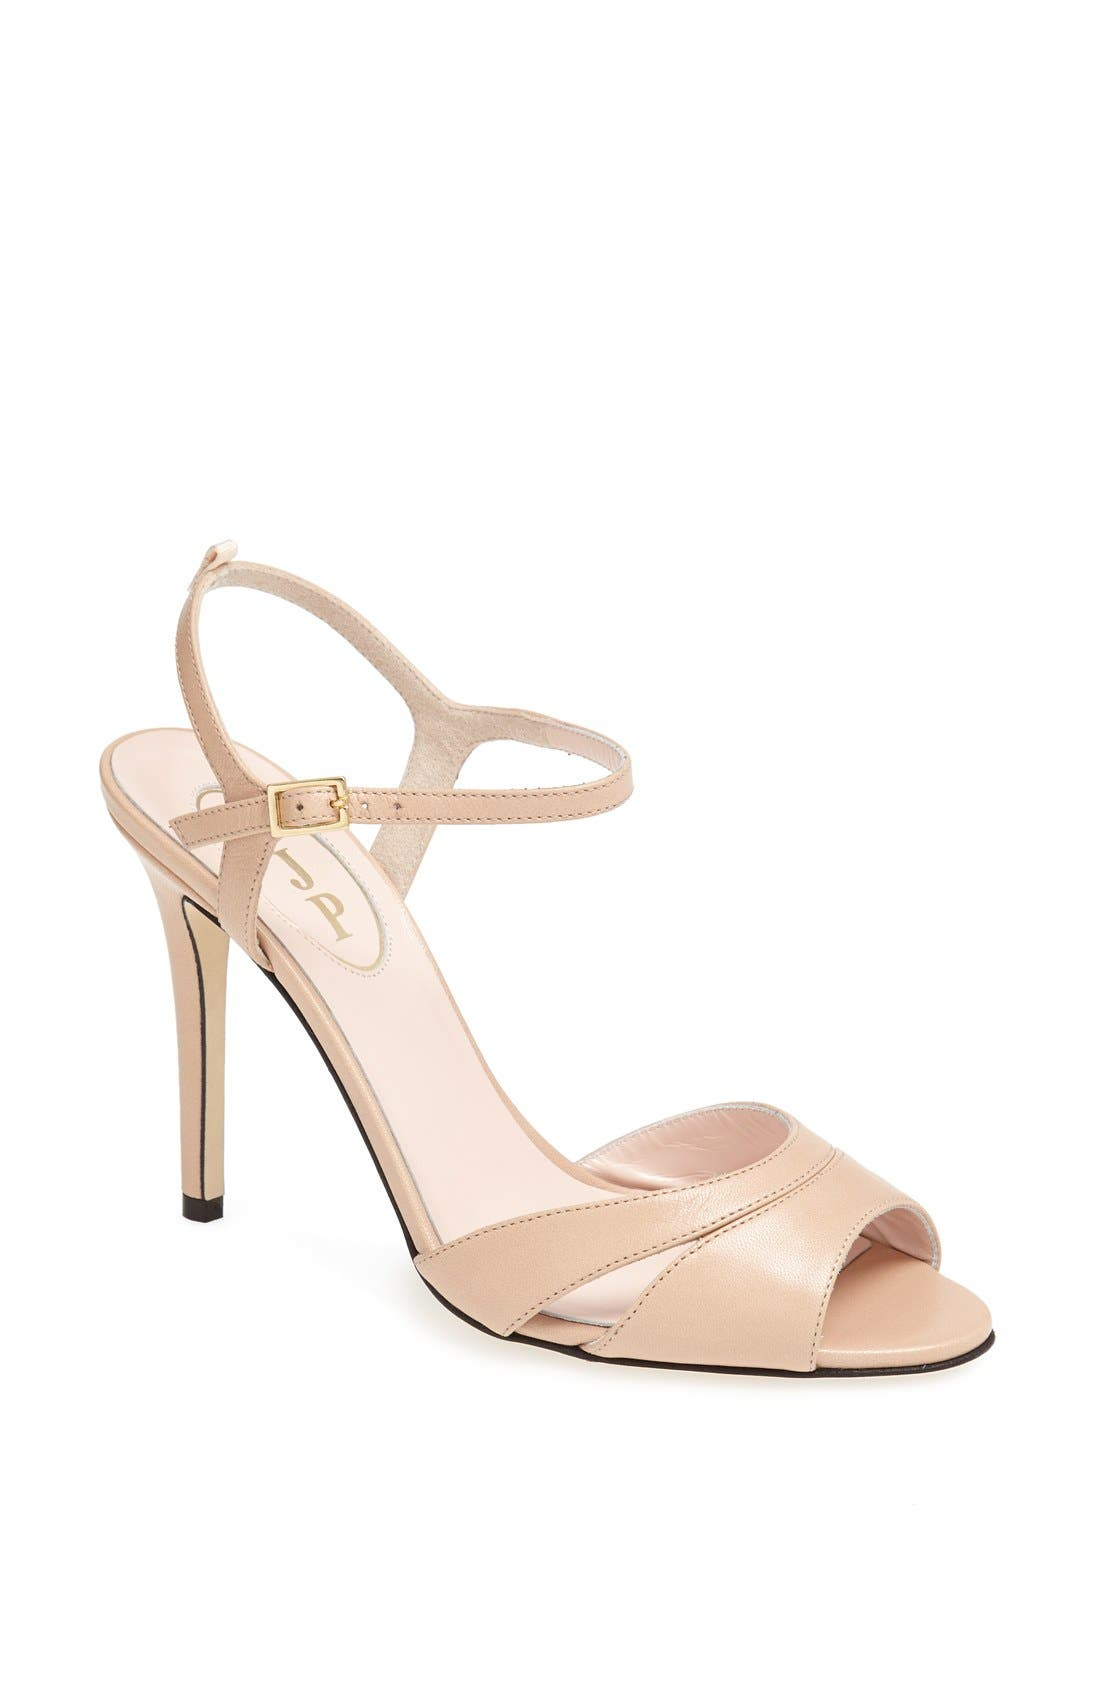 Alternate Image 1 Selected - SJP 'Anna' Sandal (Nordstrom Exclusive)